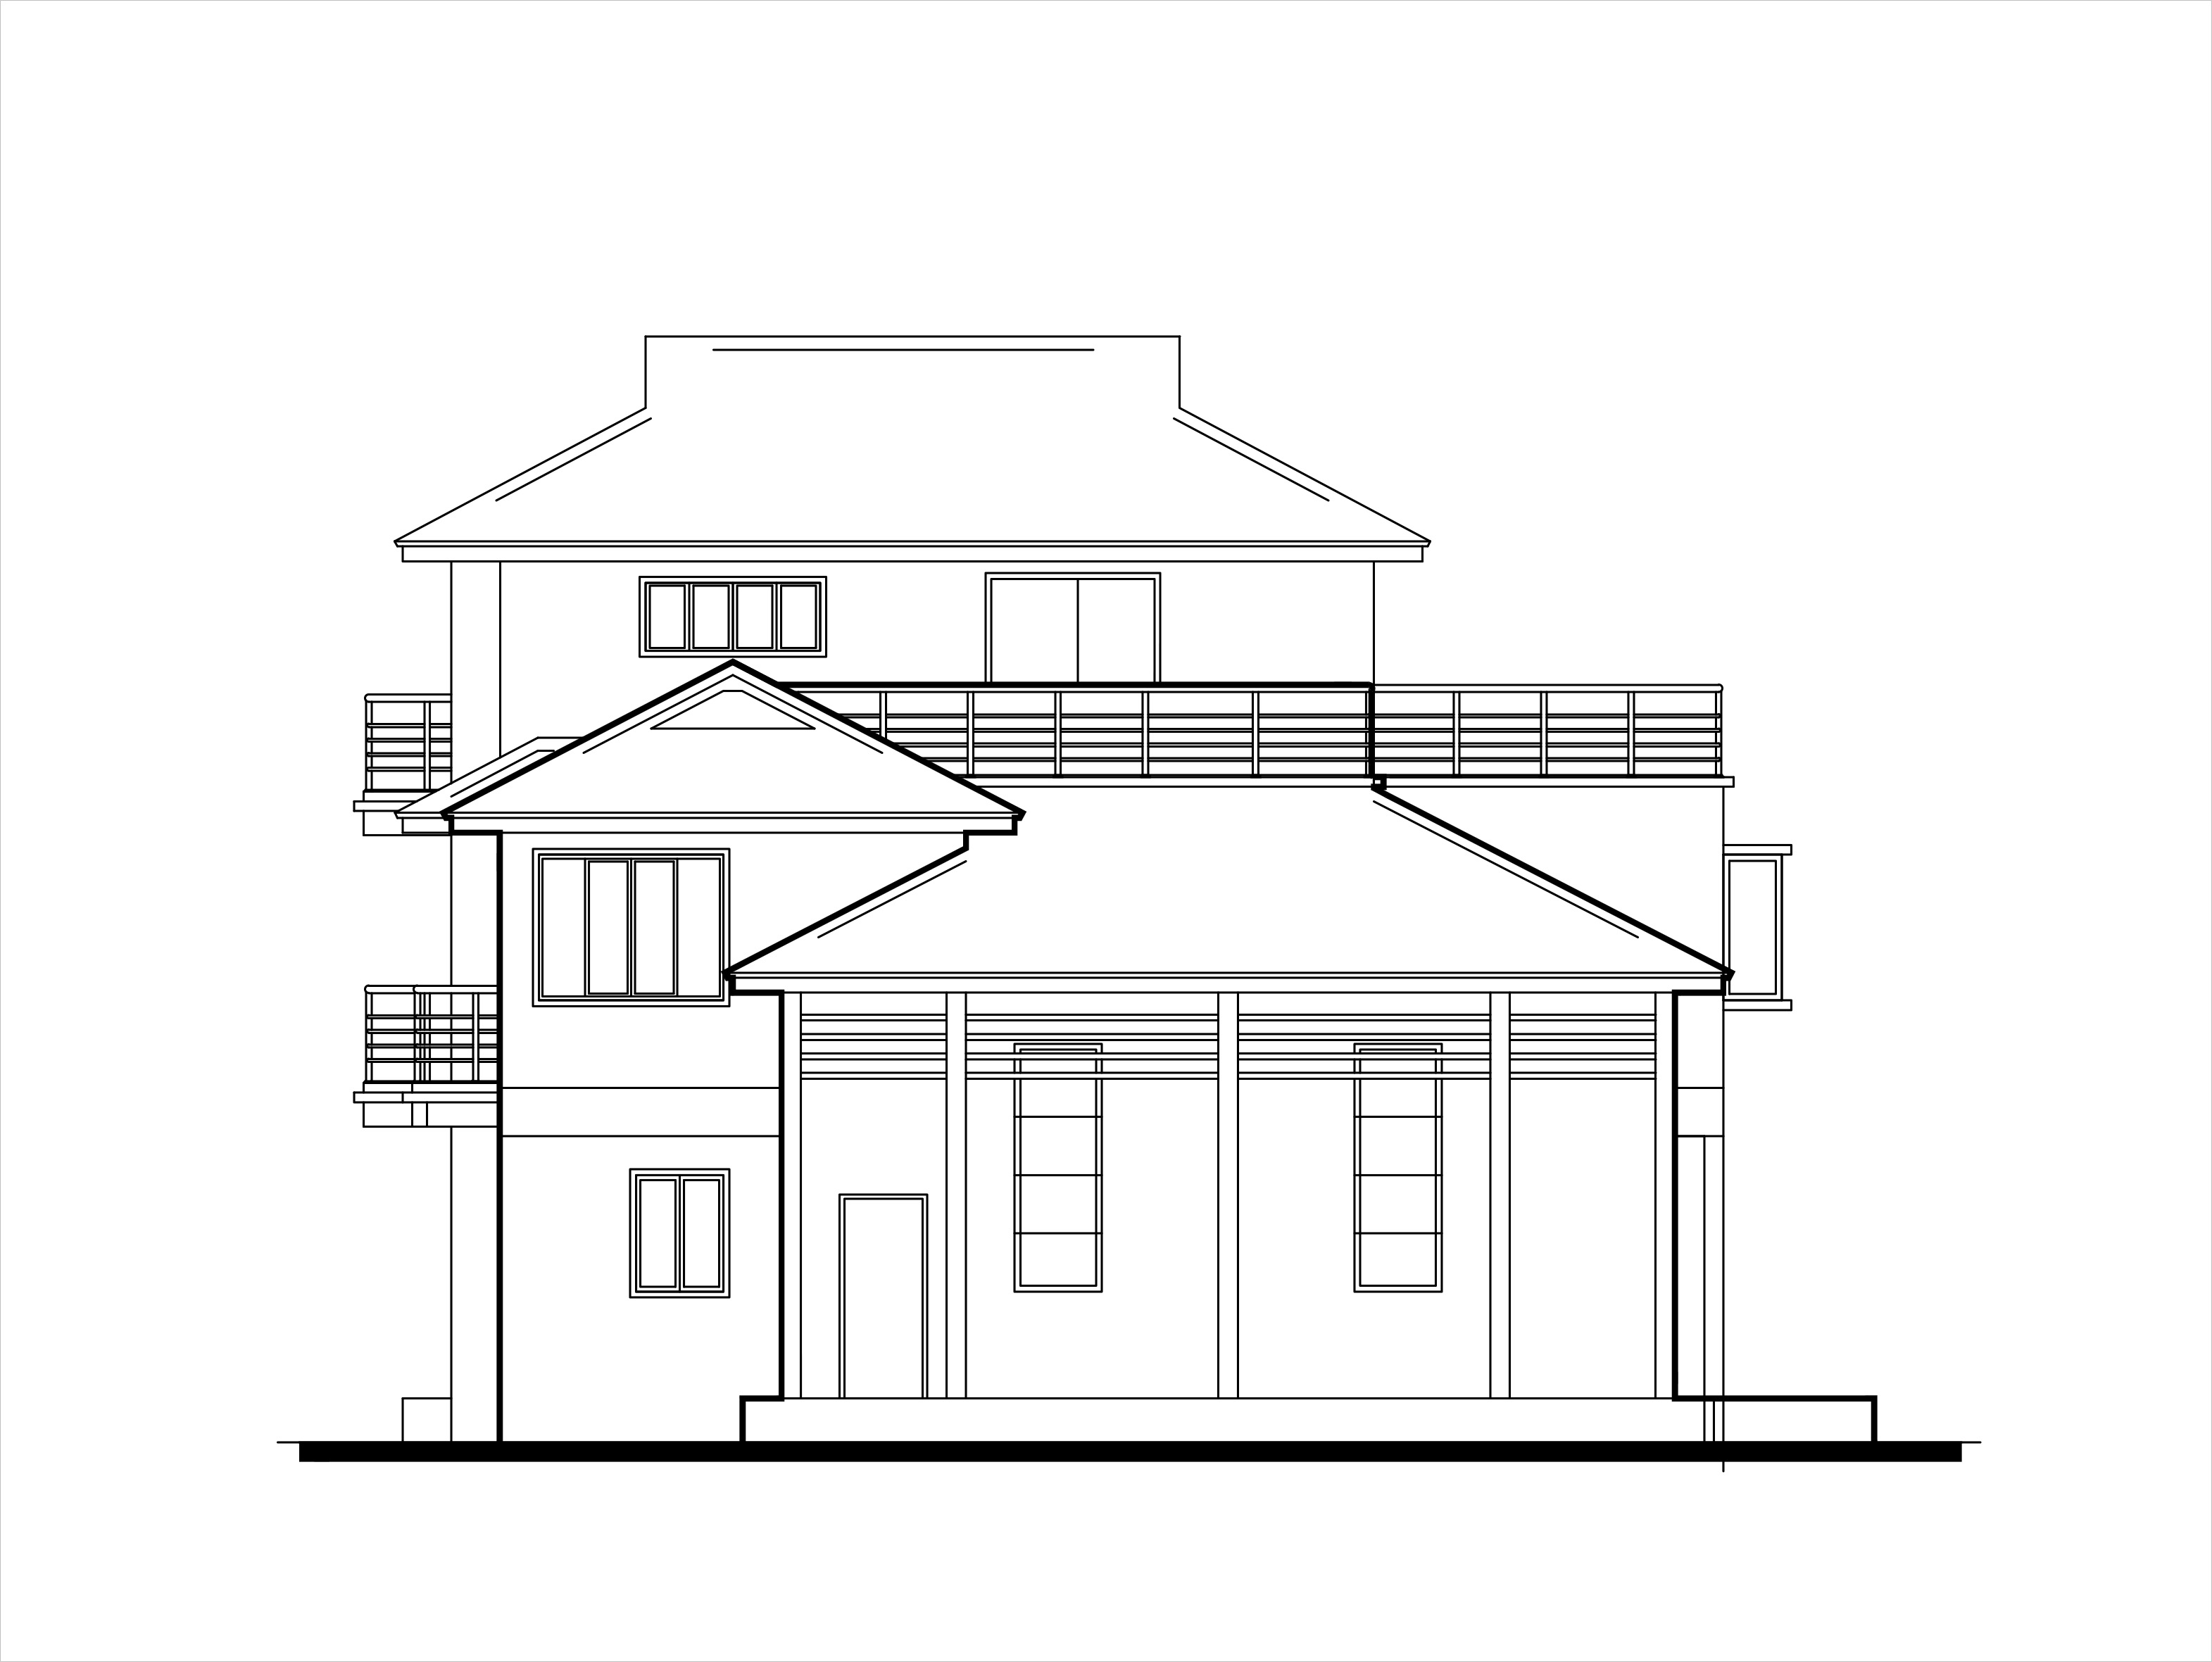 Elevation Plan In Autocad : Double story low cost house plans dwg net cad blocks